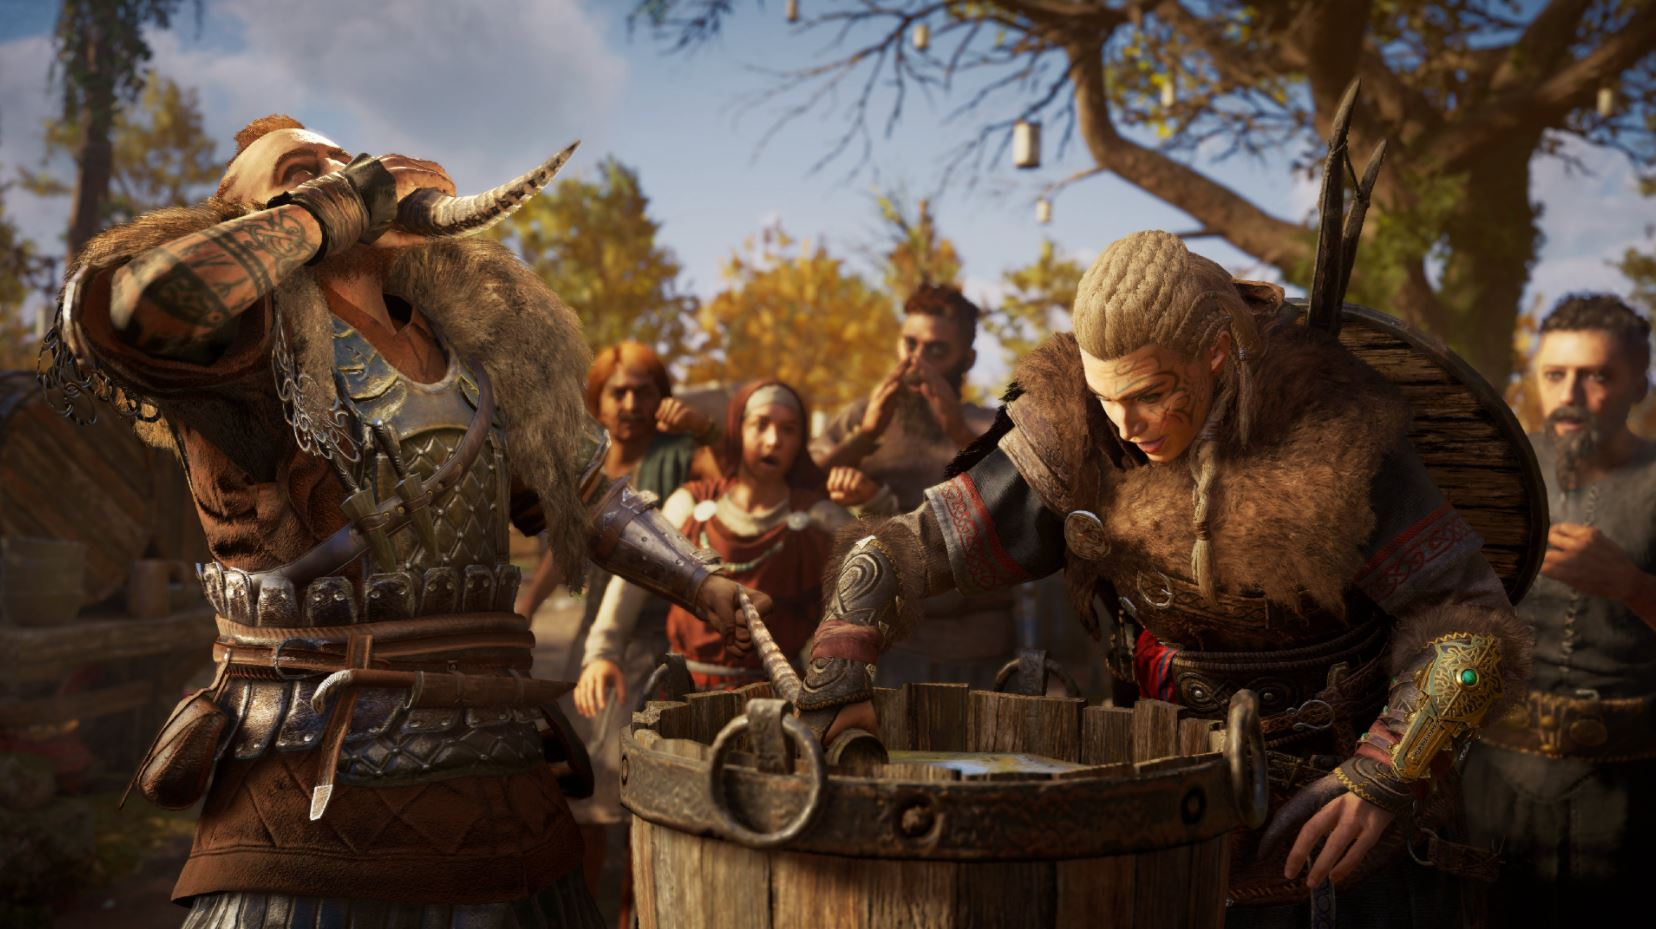 assassins-creed-valhalla-update-1-004-000-patch-notes-adds-performance-modes-and-more-to-the-viking-rpg